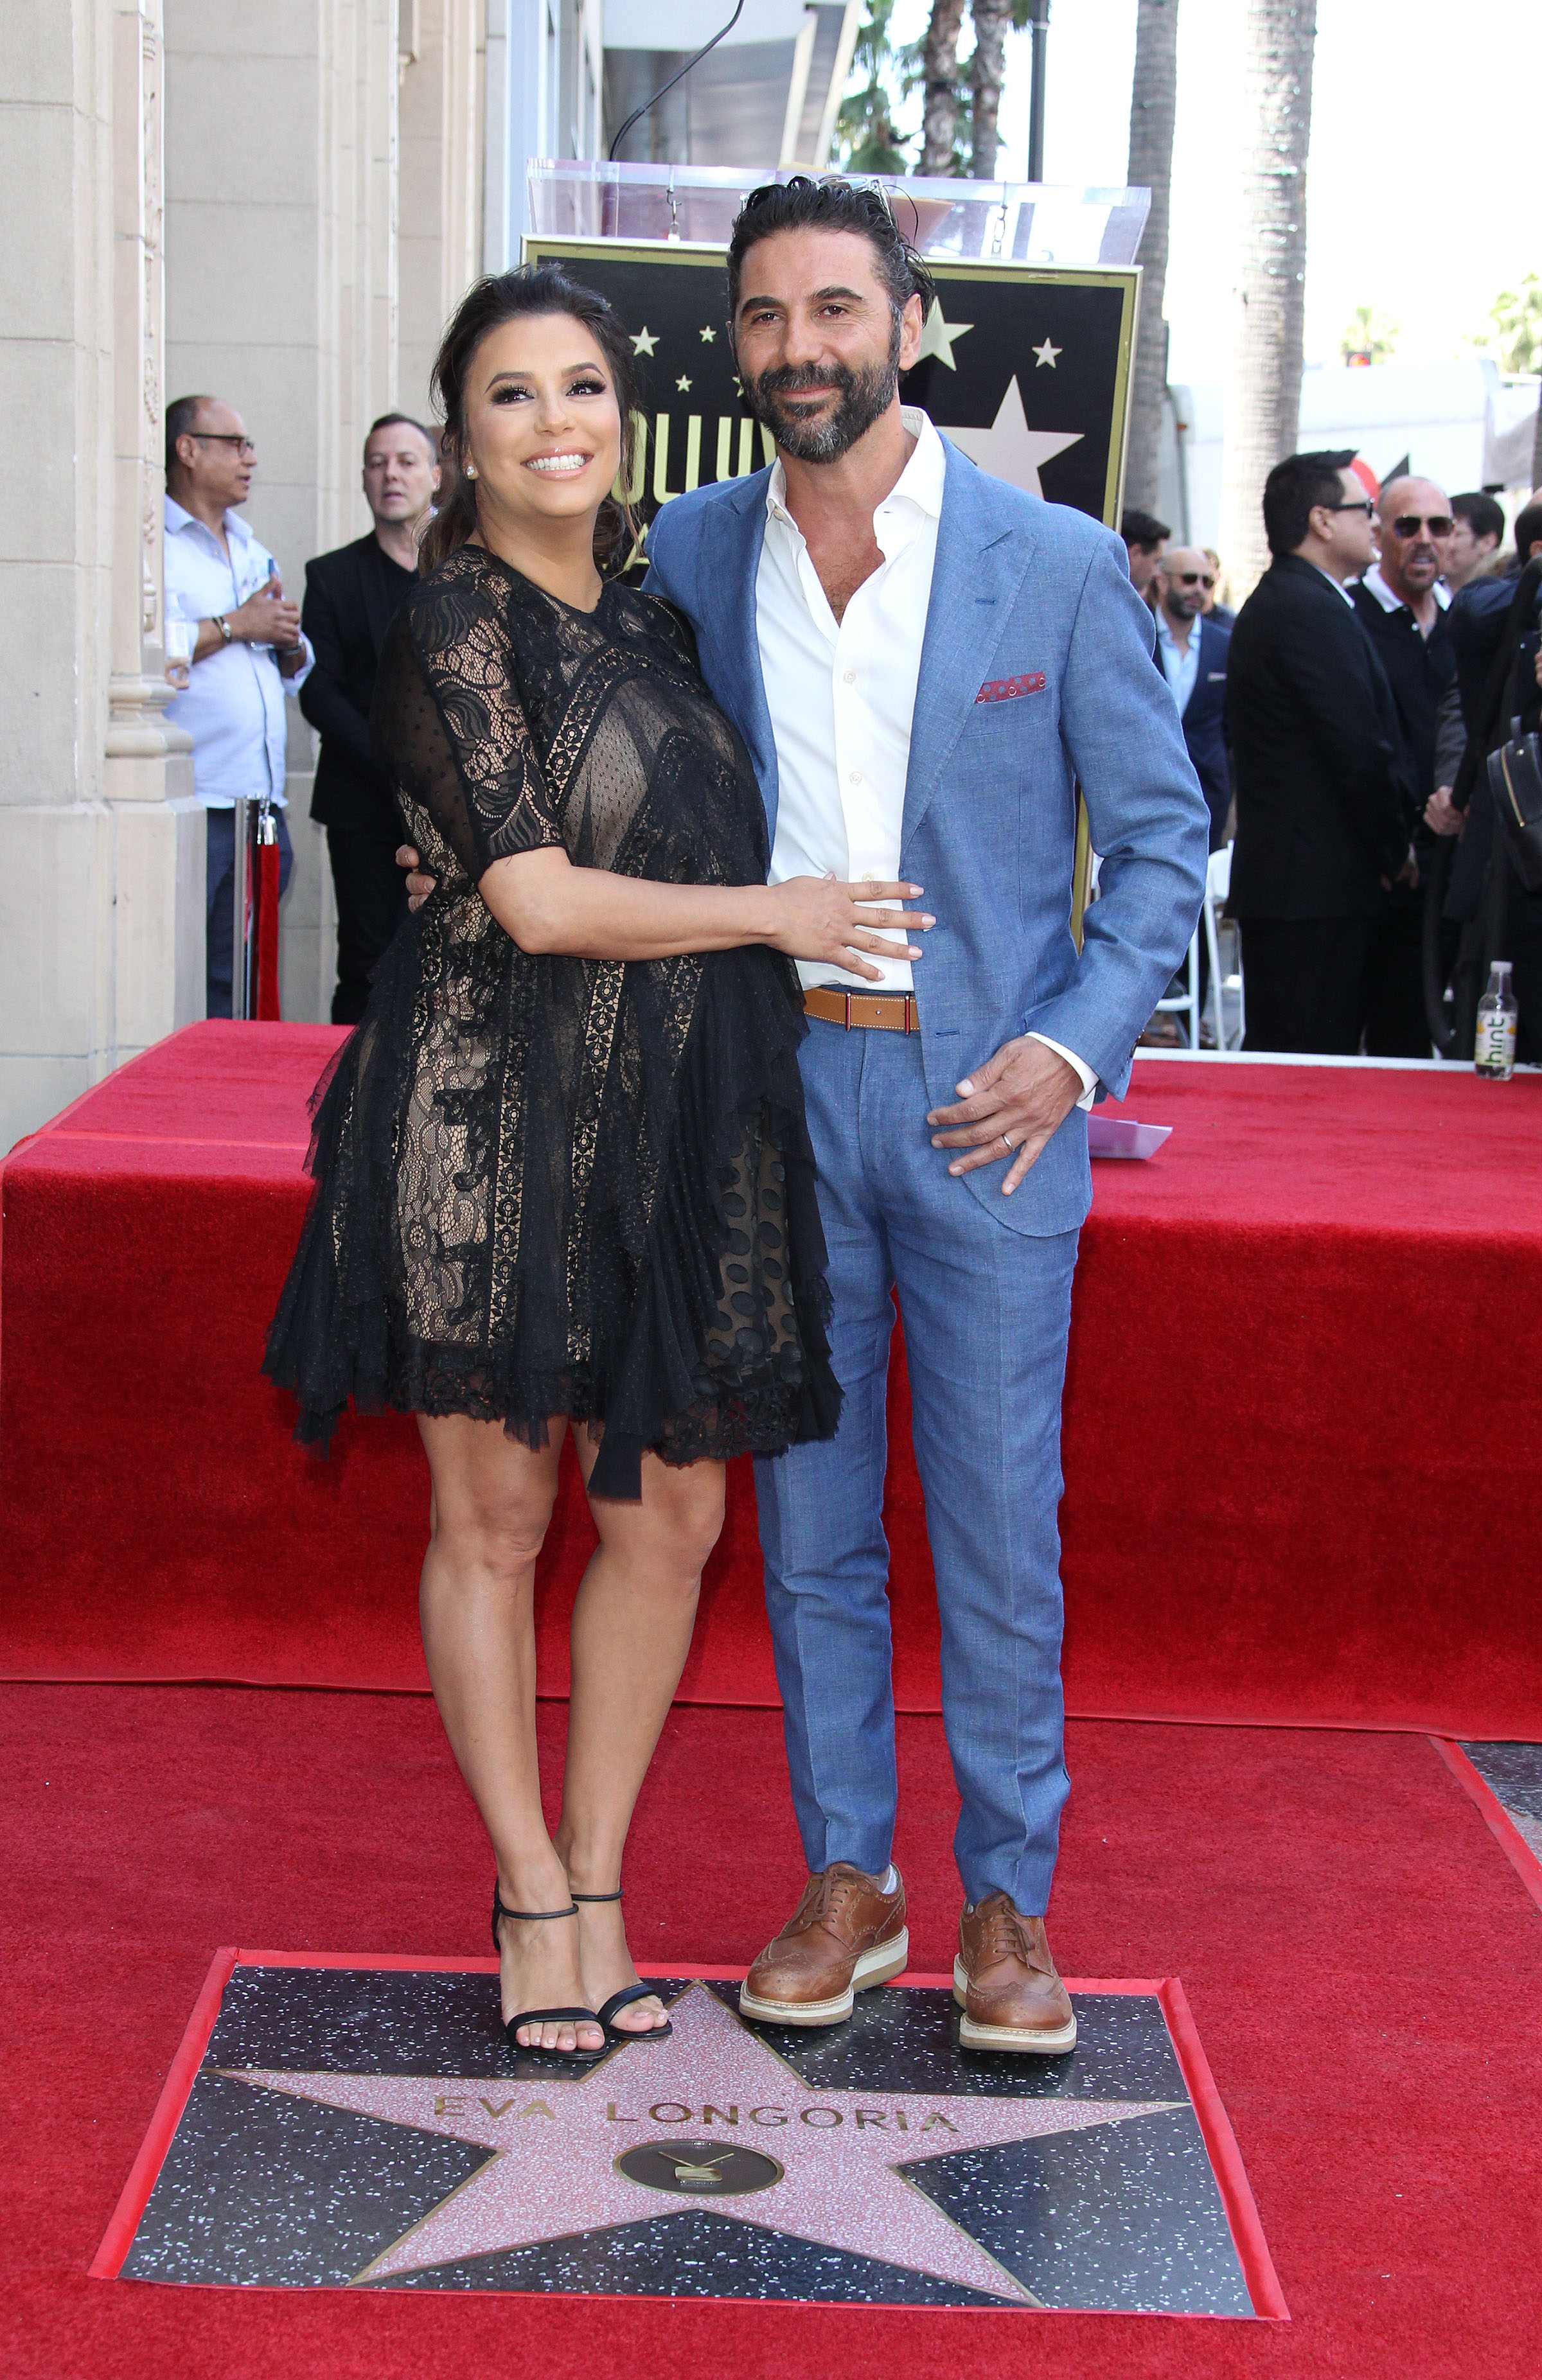 Eva Longoria Honored with a star on the Hollywood Walk of Fame - Los Angeles <P> Pictured: Eva Longoria, Jose Baston <B>Ref: SPL1683828  160418  </B><BR/> Picture by: Jen Lowery / Splash News<BR/> </P><P> <B>Splash News and Pictures</B><BR/> Los Angeles:	310-821-2666<BR/> New York:	212-619-2666<BR/> London:	870-934-2666<BR/> <span id=